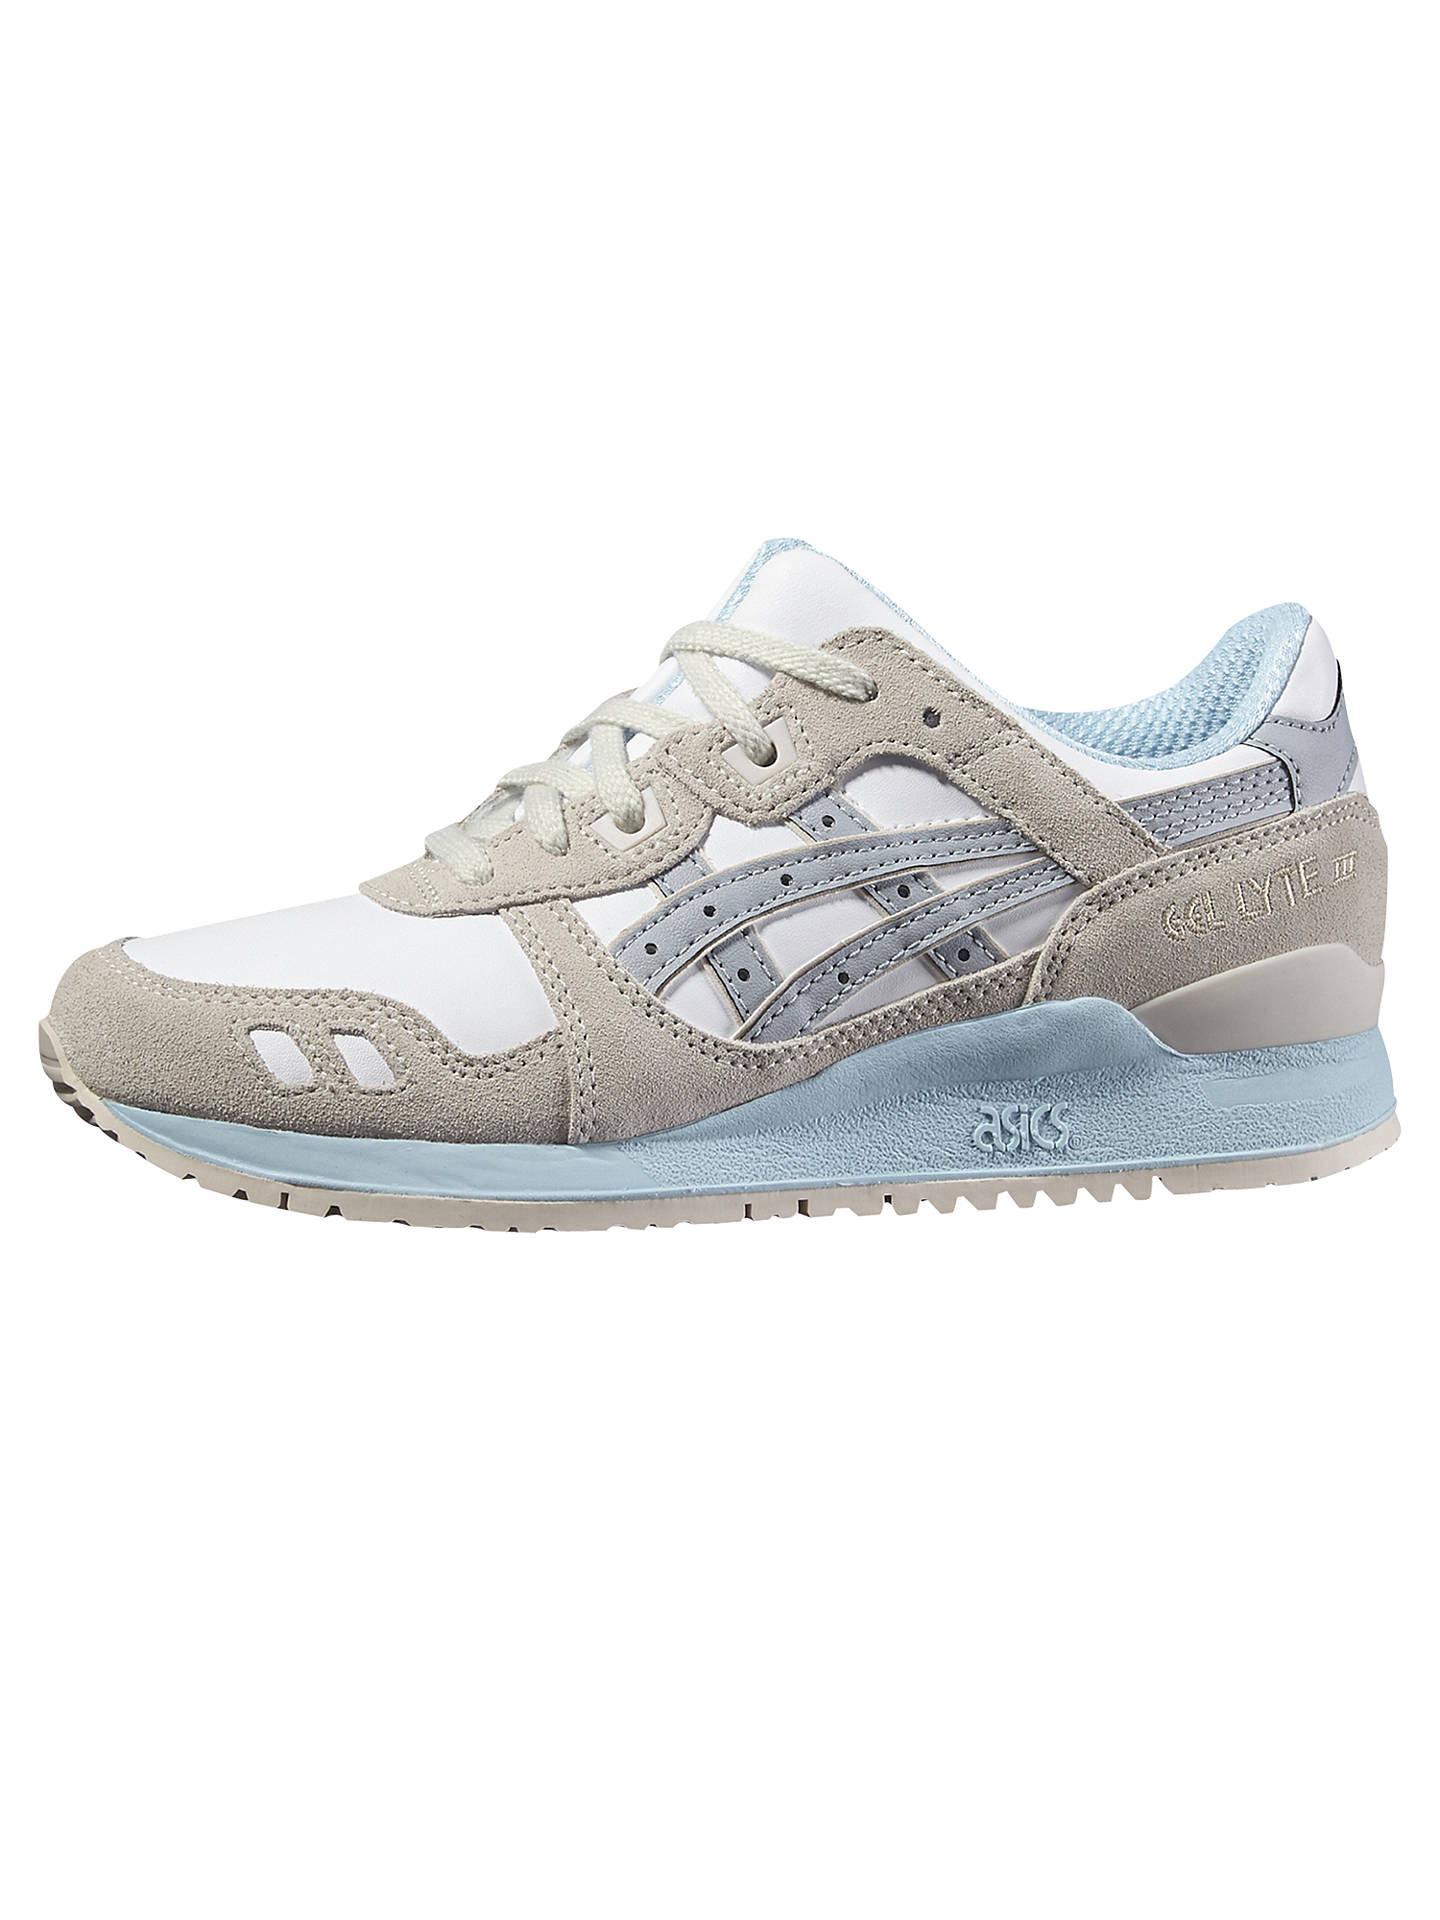 promo code 52a6f 2e6af Asics Tiger Gel Lyte III Women's Trainers, White/Multi at ...